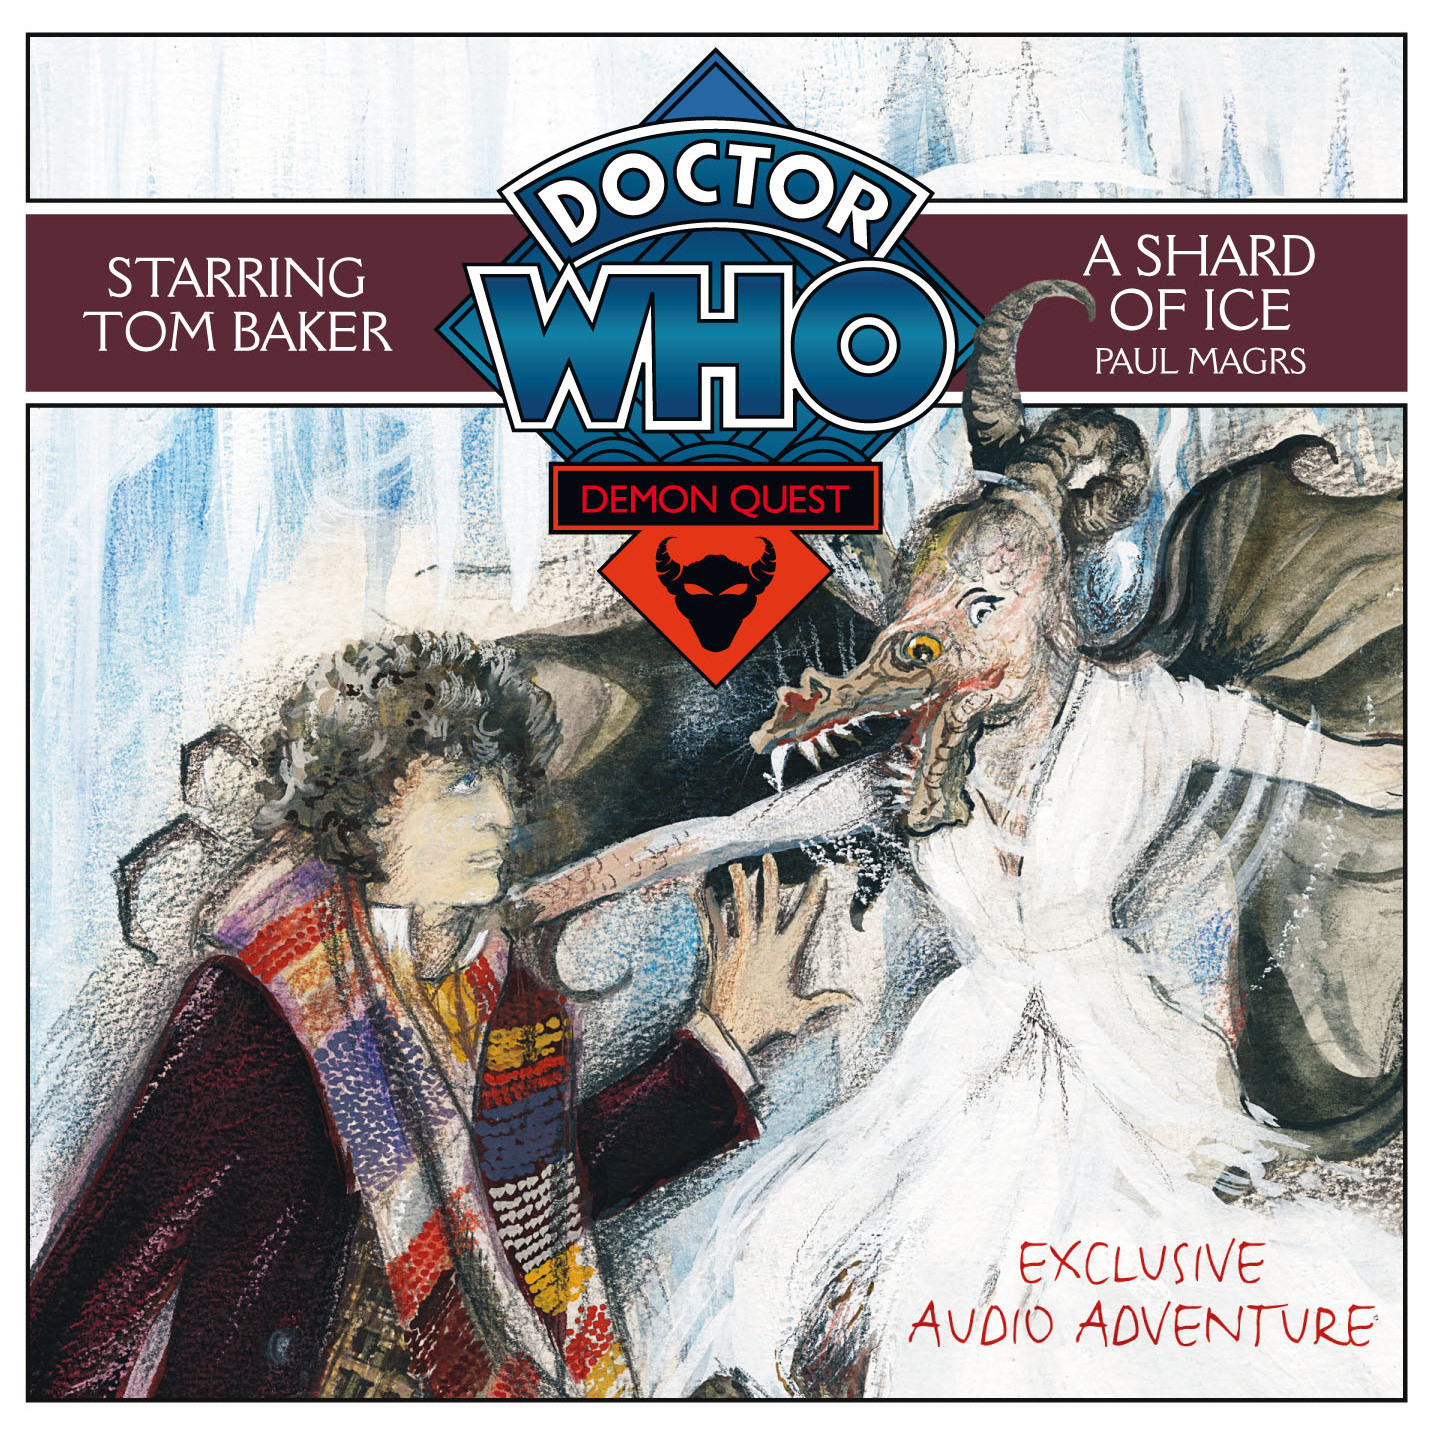 Printable Doctor Who: A Shard of Ice Audiobook Cover Art